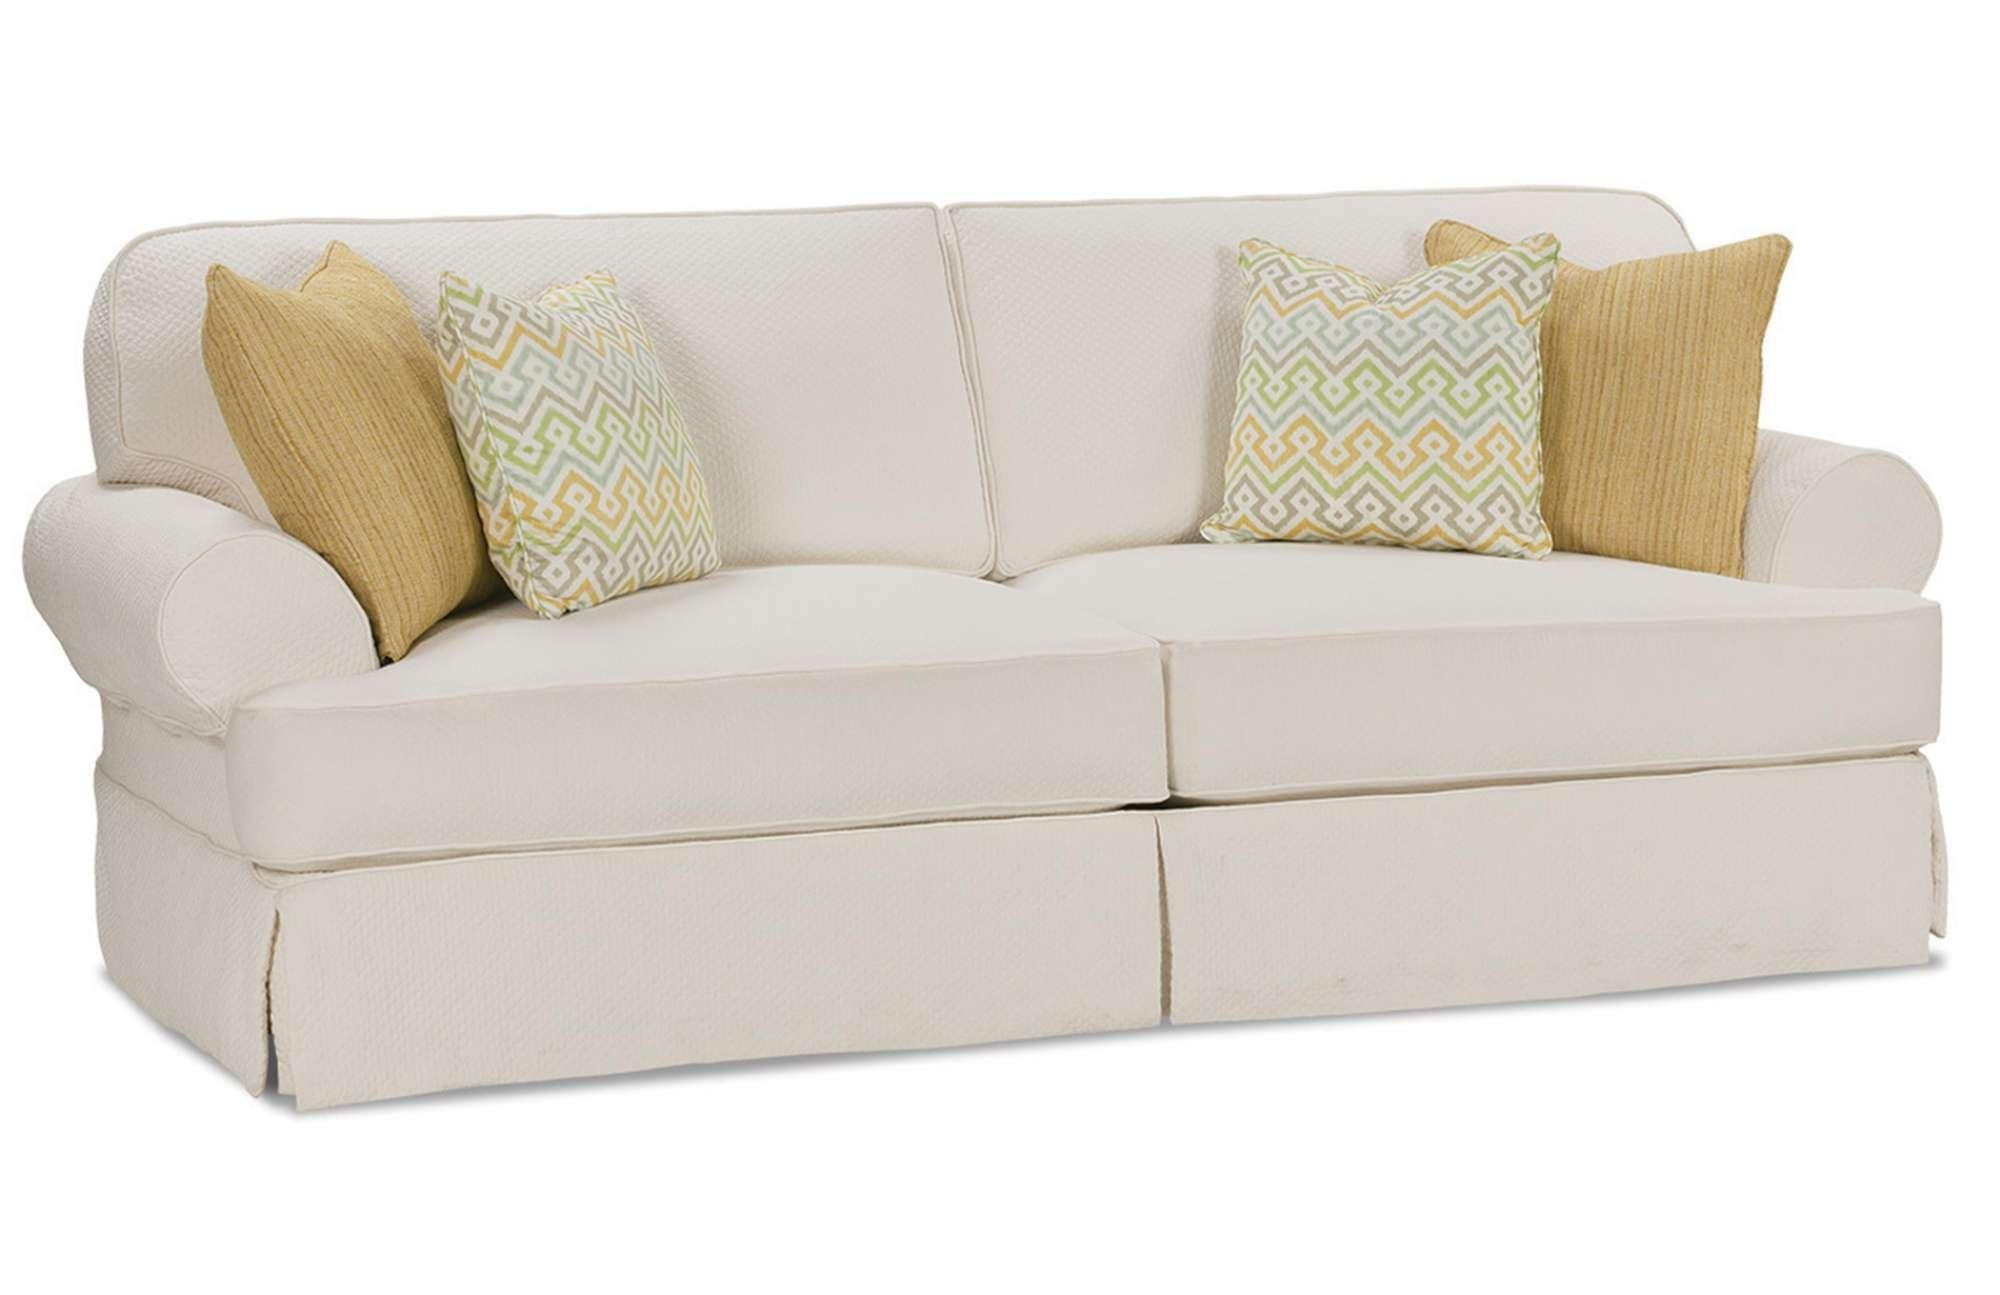 Furniture & Rug: Sofa Covers For Sectionals | Rowe Sofas | Rowe Pertaining To Rowe Sectional Sofas (Image 6 of 20)